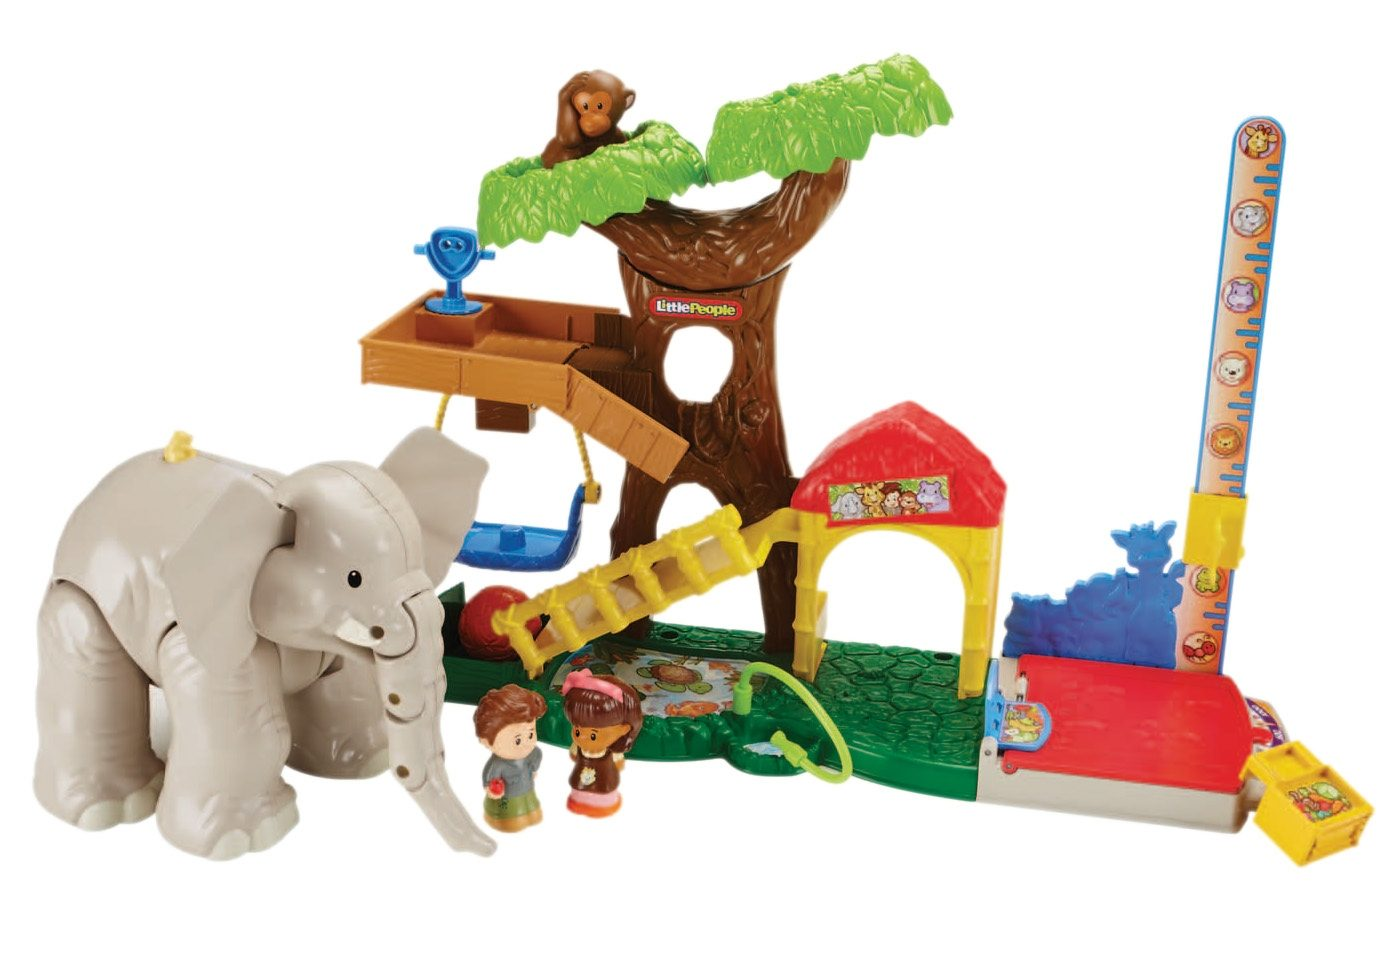 Fisher Price Tier Spiel-Set, Little People, »Maxi-Tierwelt Zoo«